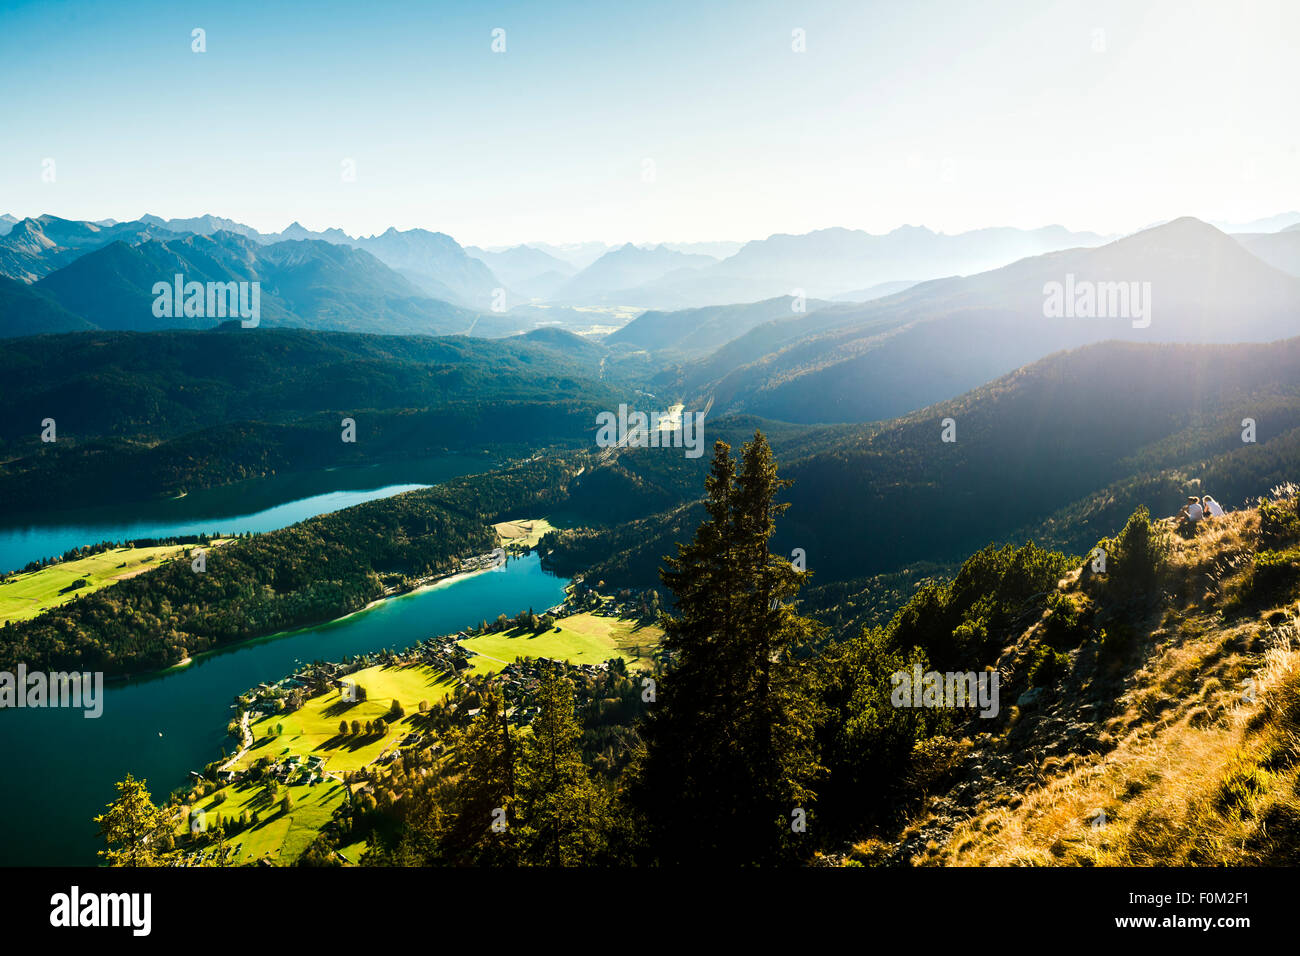 Walchensee and the Karwendel Mountains, Bavaria, Germany - Stock Image